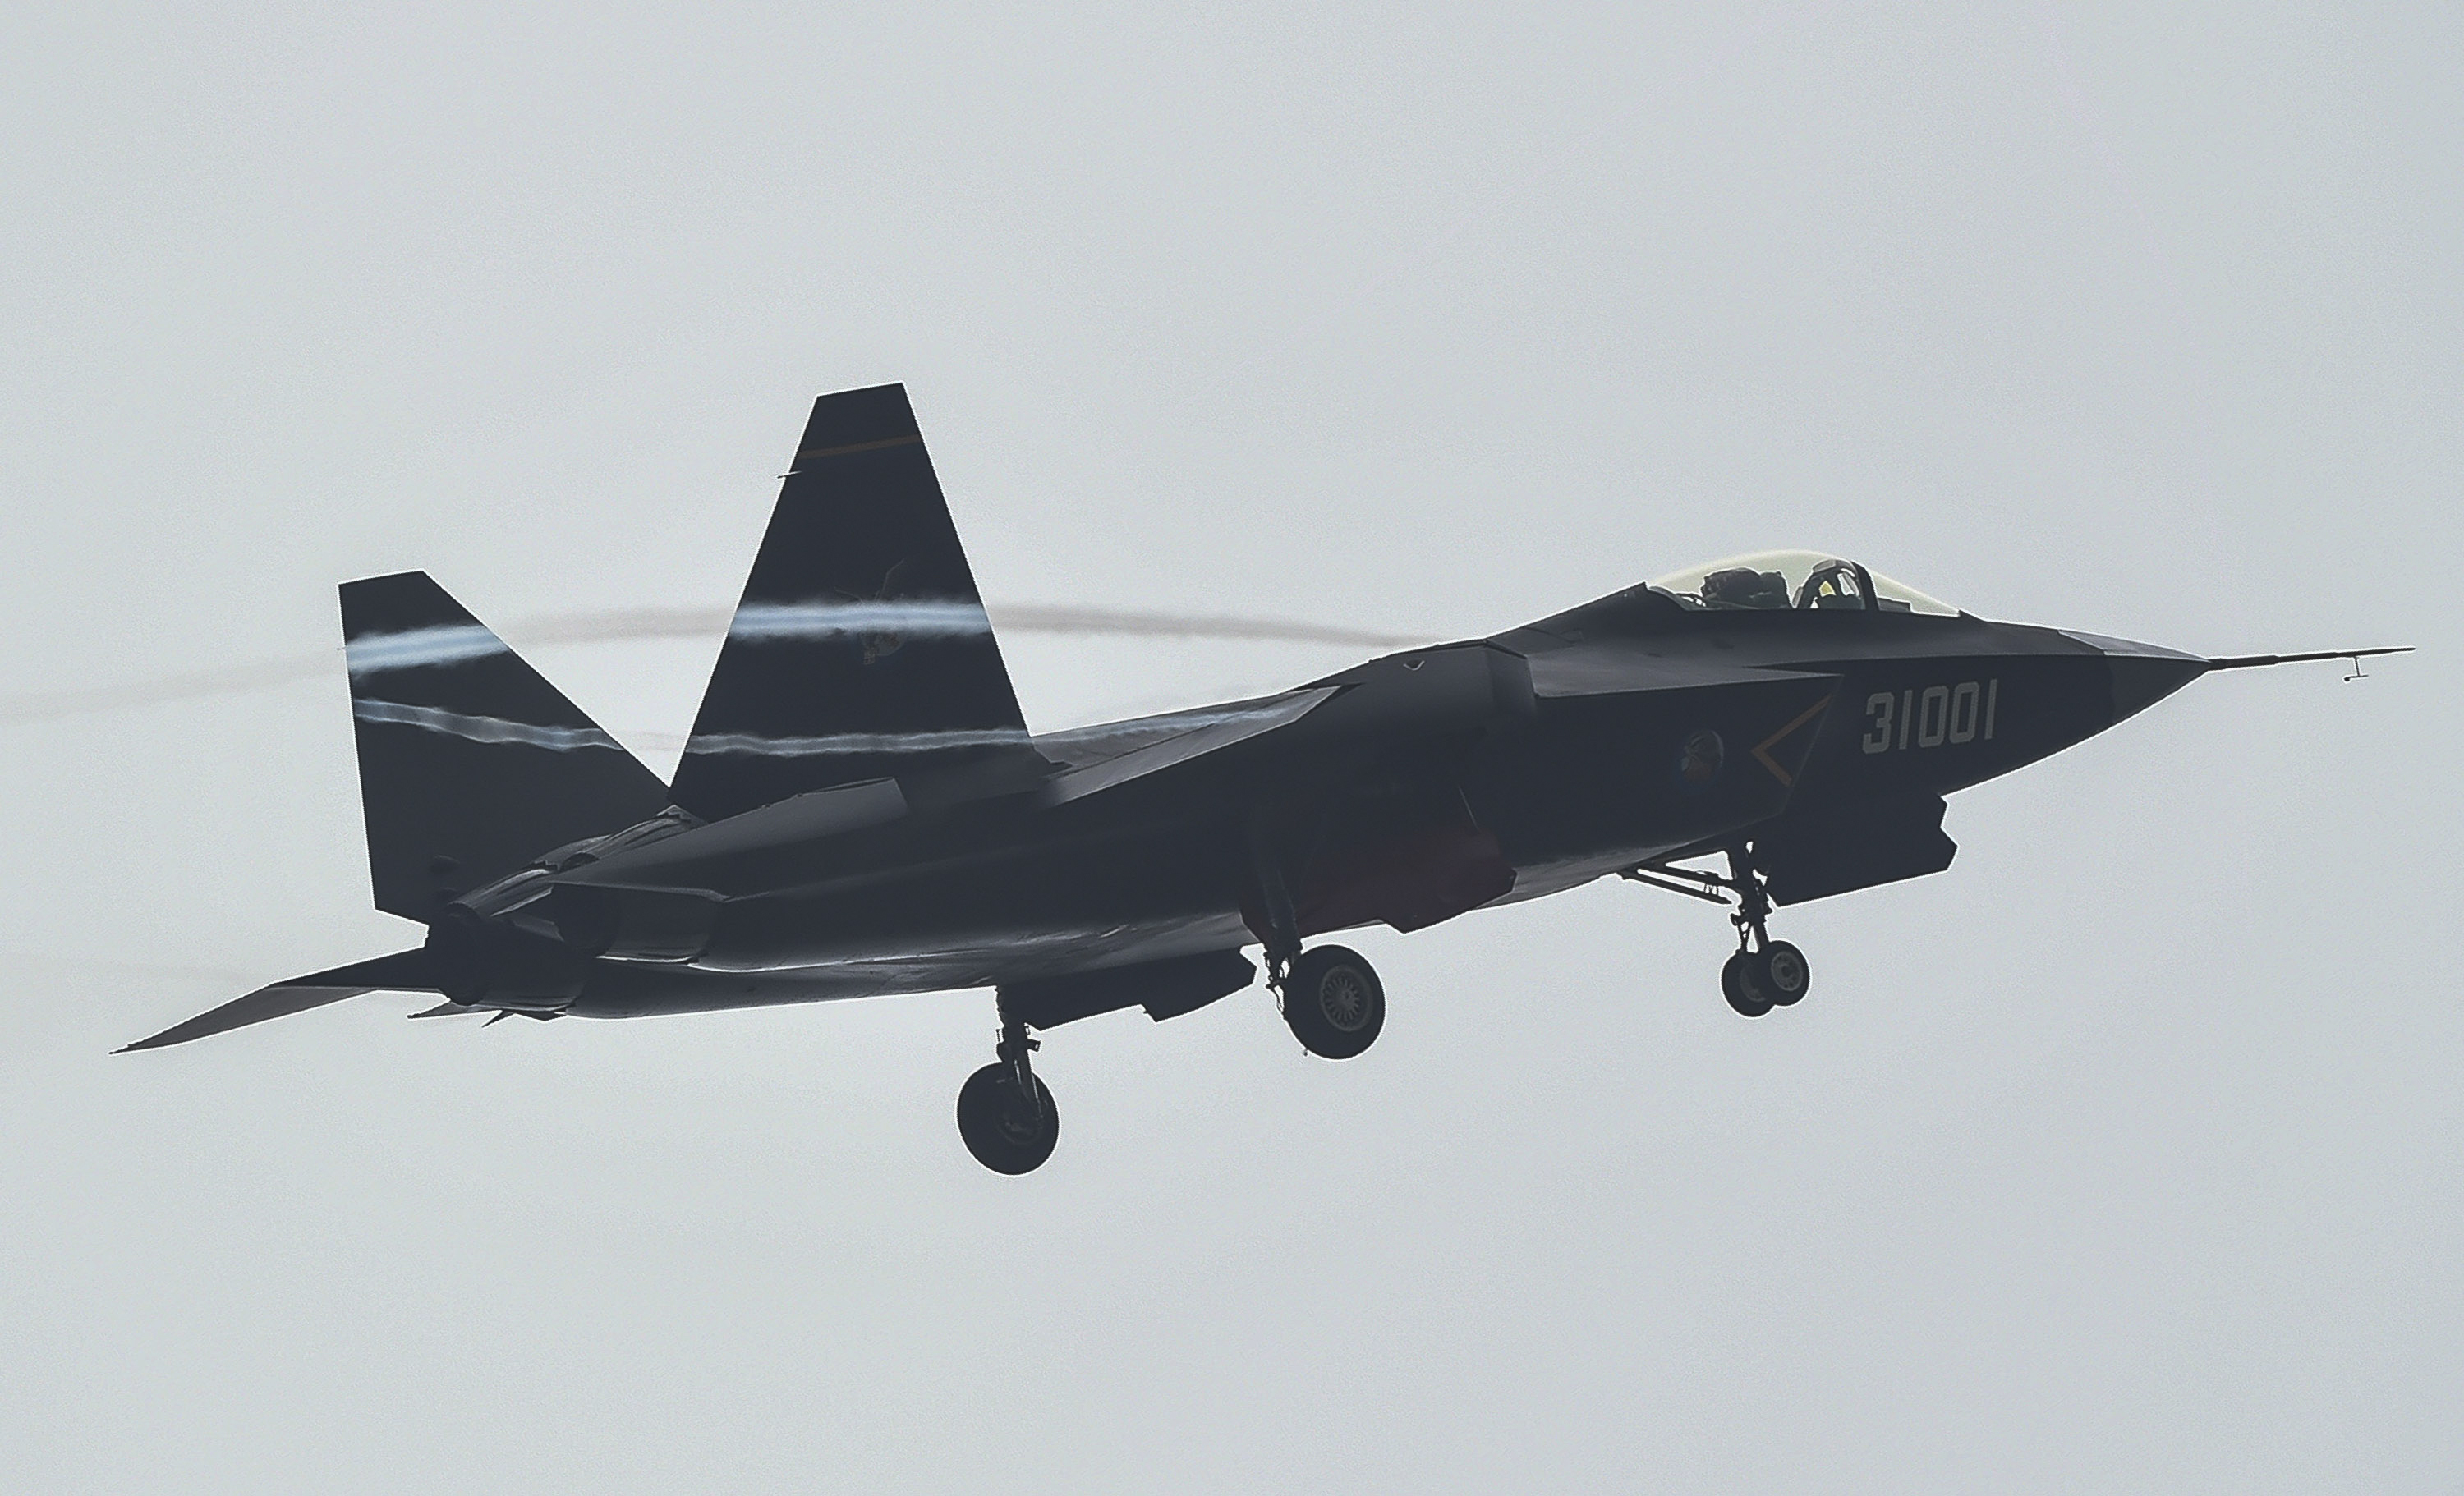 In this In this photo provided by Xinhua News Agency, a J-31 stealth fighter takes off for test flight ahead of the China International Aviation & Aerospace Exhibition in Zhuhai, China's southern Guangdong province, on Nov. 10, 2014